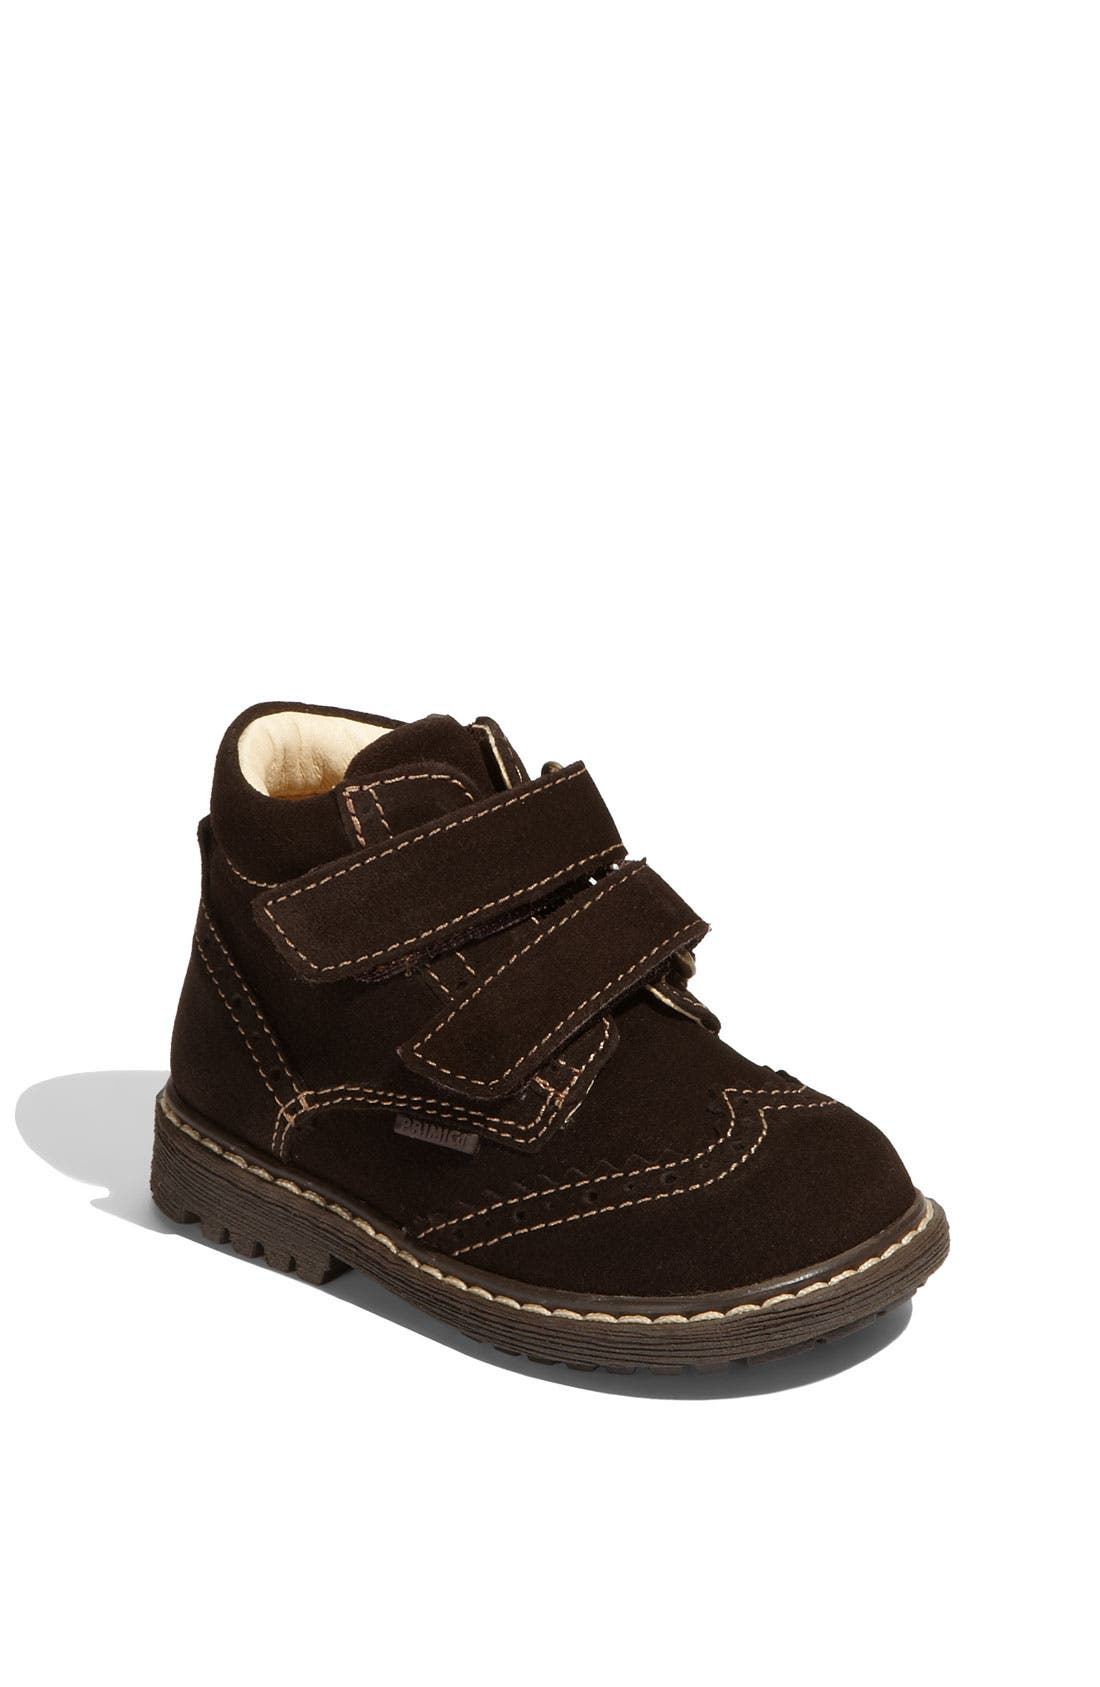 Alternate Image 1 Selected - Primigi 'Romuald' Boot (Walker & Toddler)